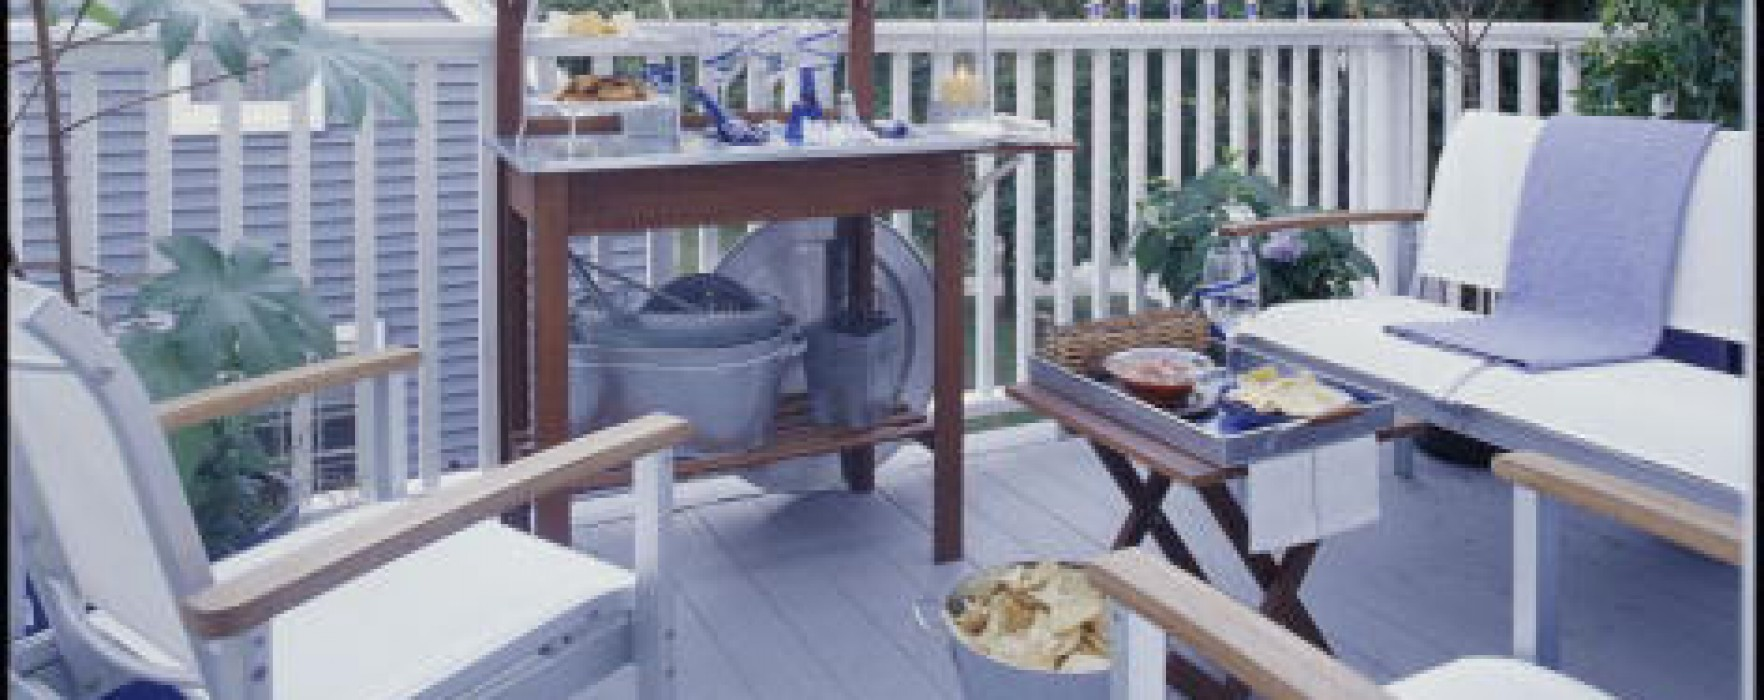 Stress Free Fun Easy Deck Party Ideas Better Homes